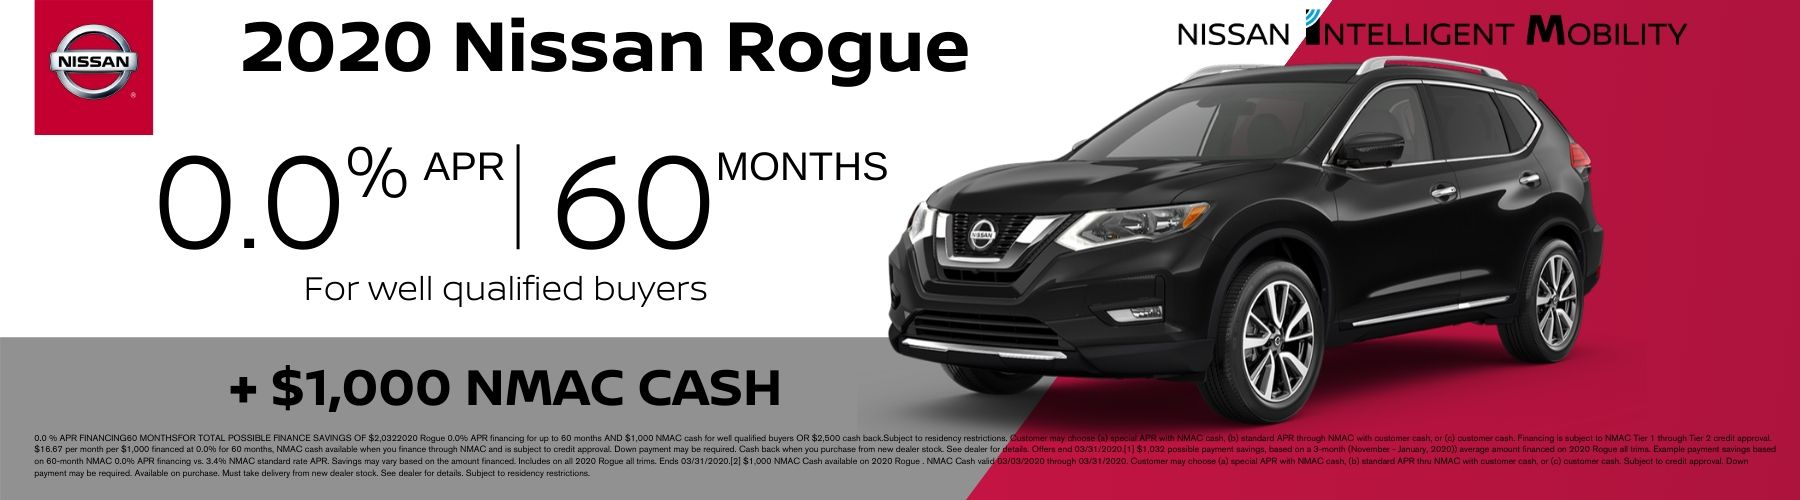 Nissan Rogue Offer